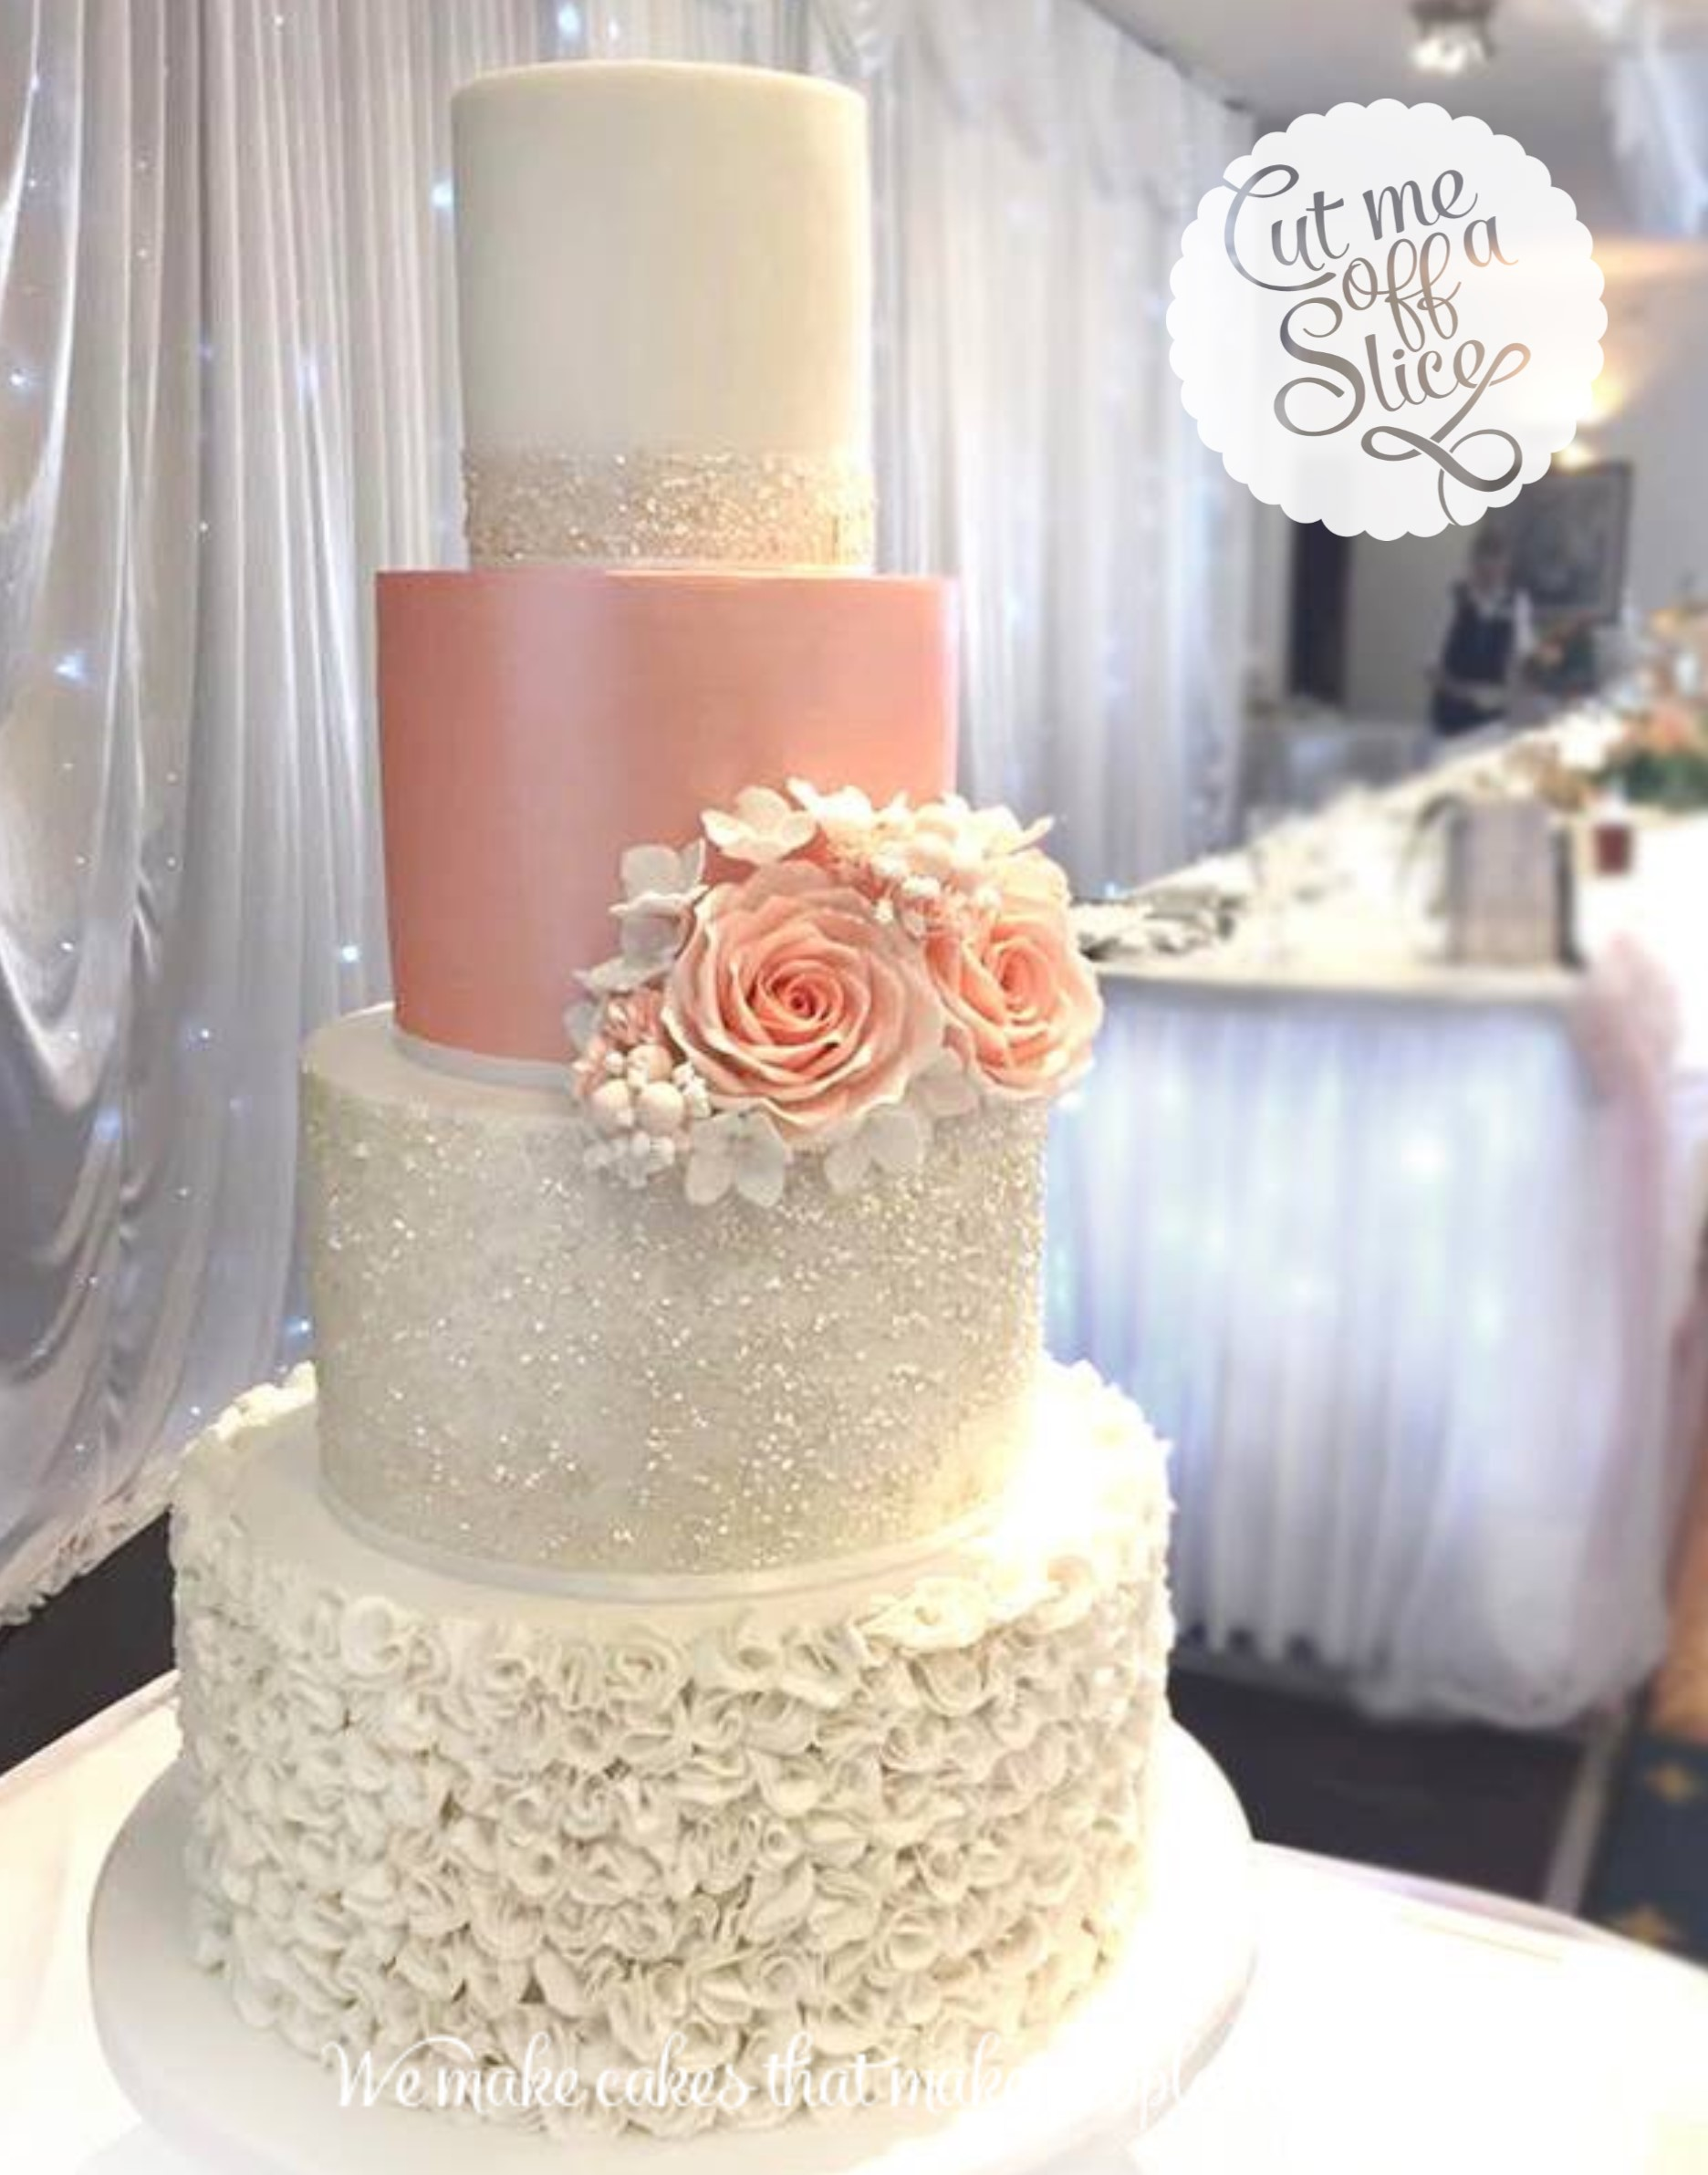 How To Cut A  Tier Wedding Cake